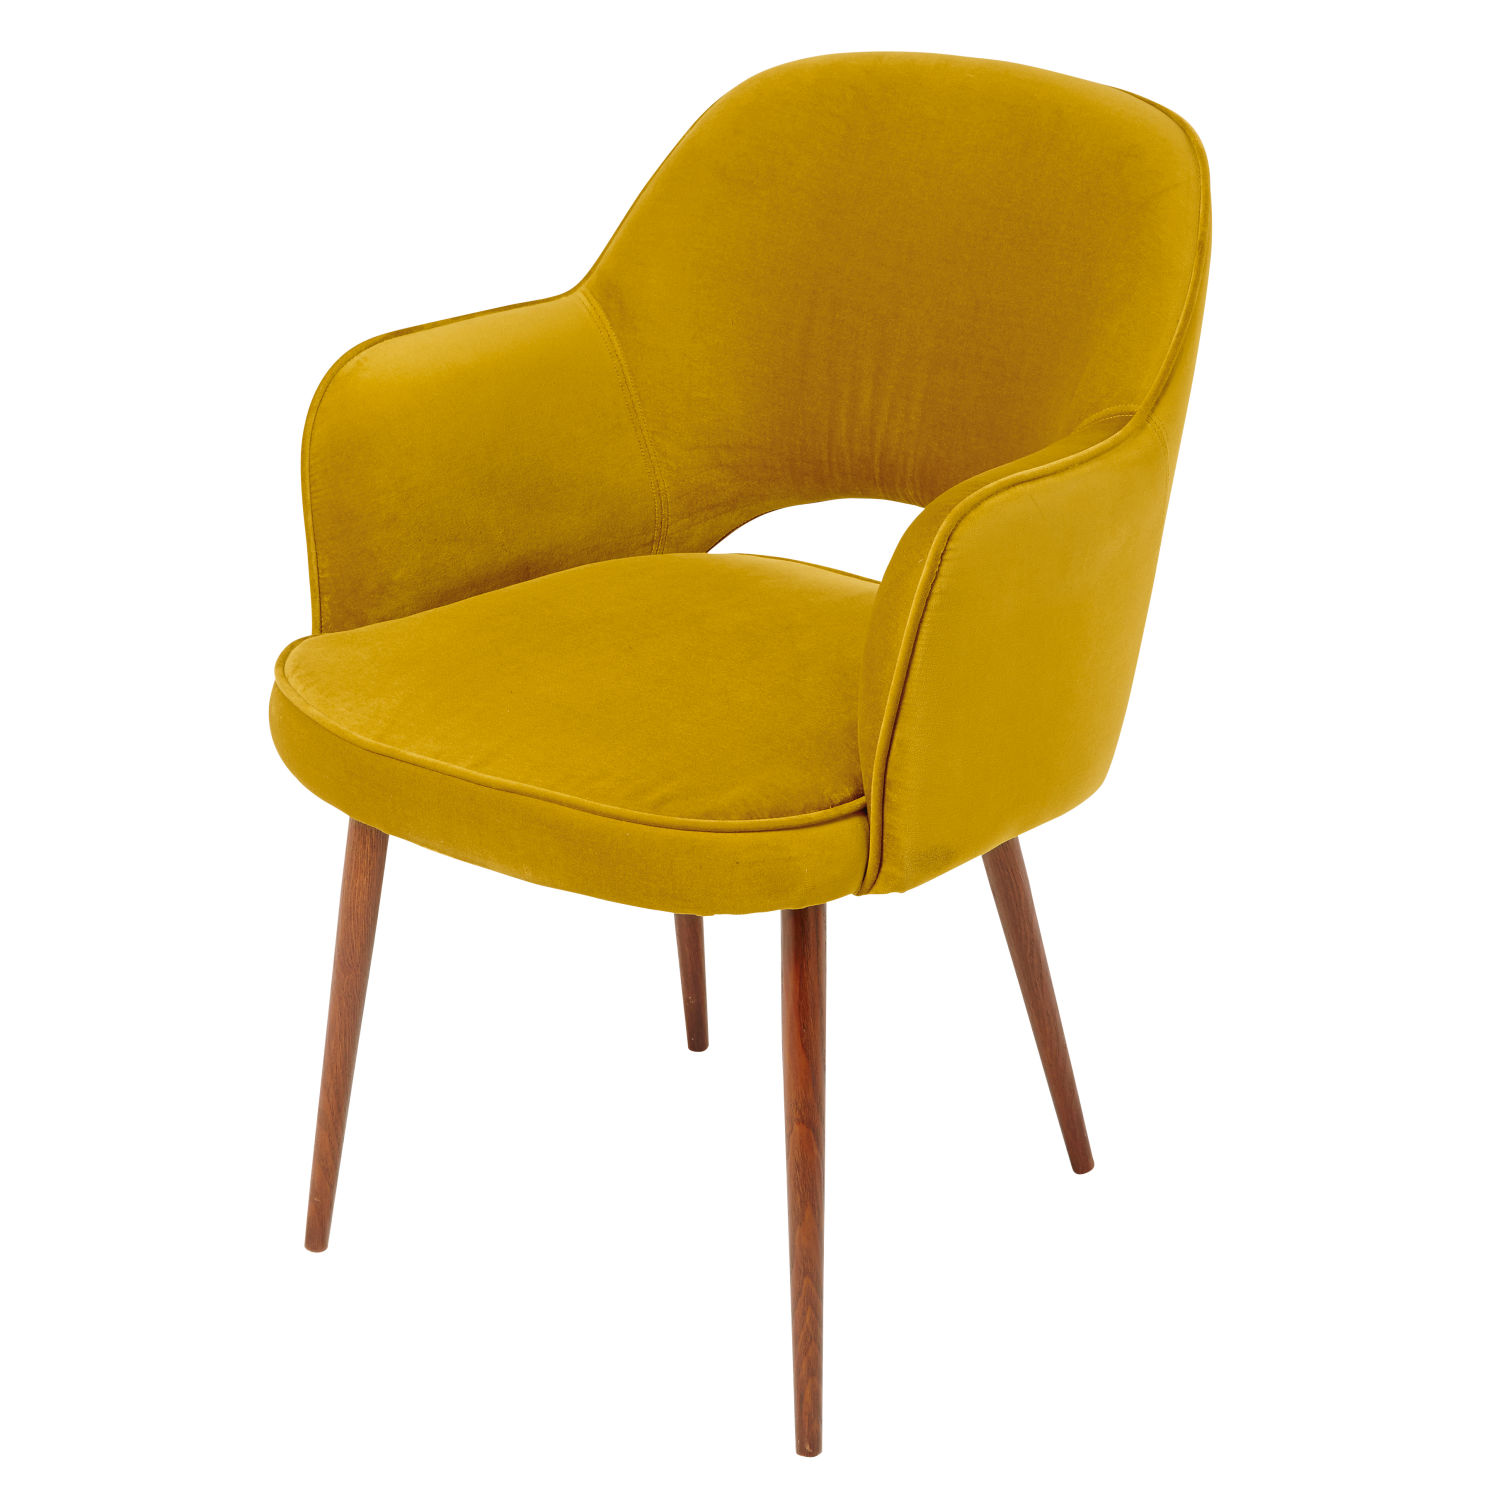 fauteuil en velours jaune moutarde et m tal h84 maisons du monde. Black Bedroom Furniture Sets. Home Design Ideas